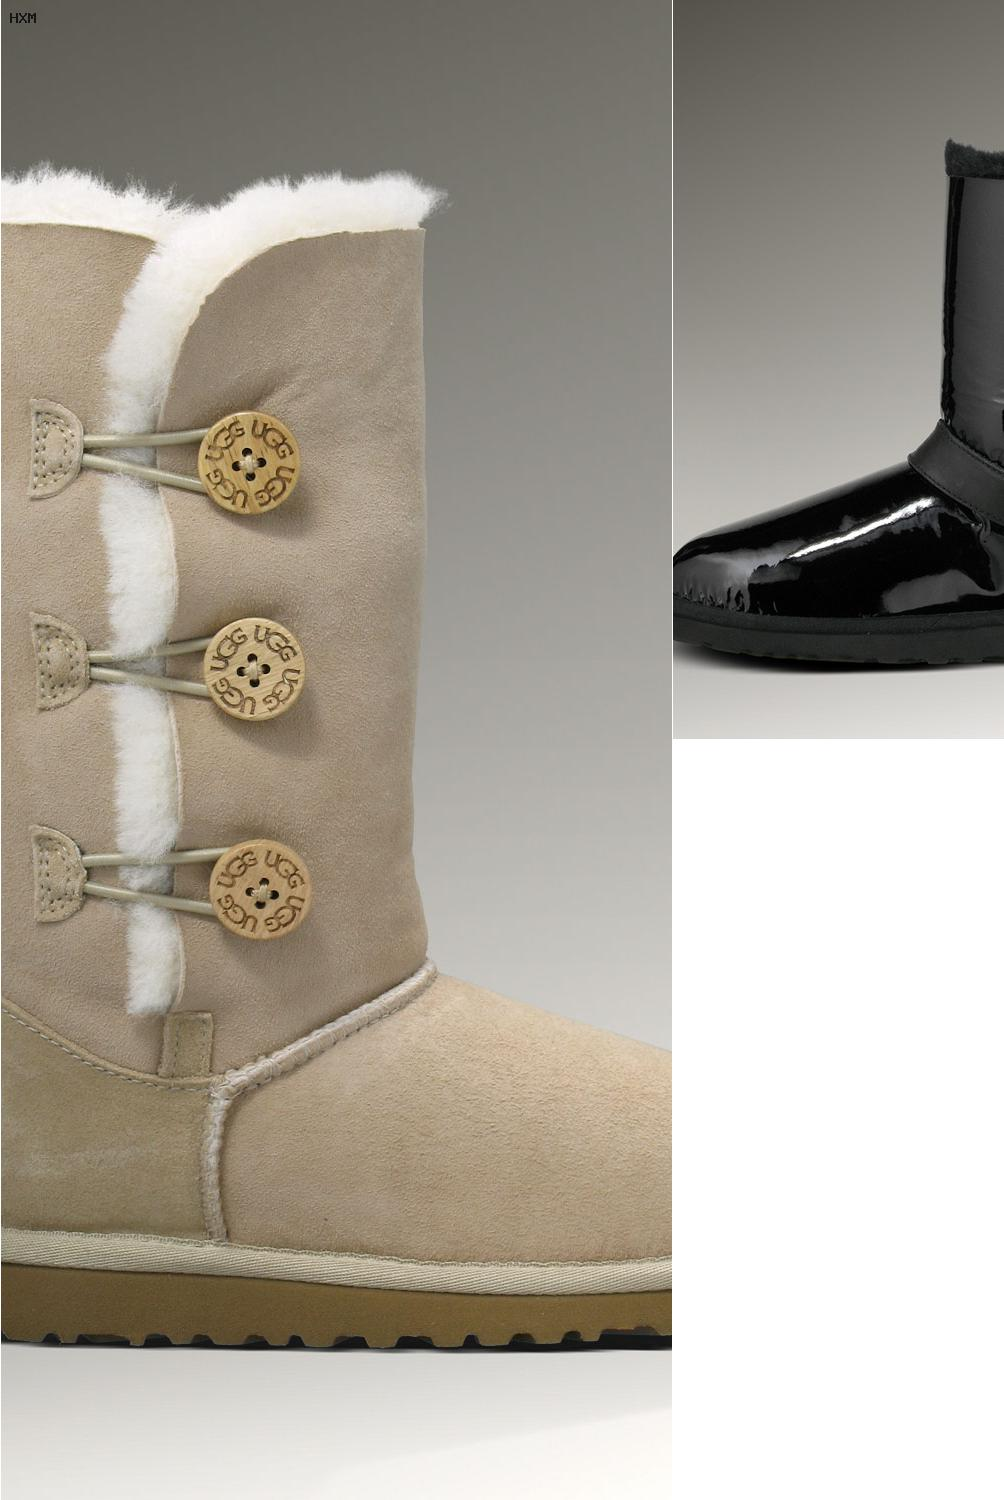 Ugg Boots Cost In America cheap watches mgc